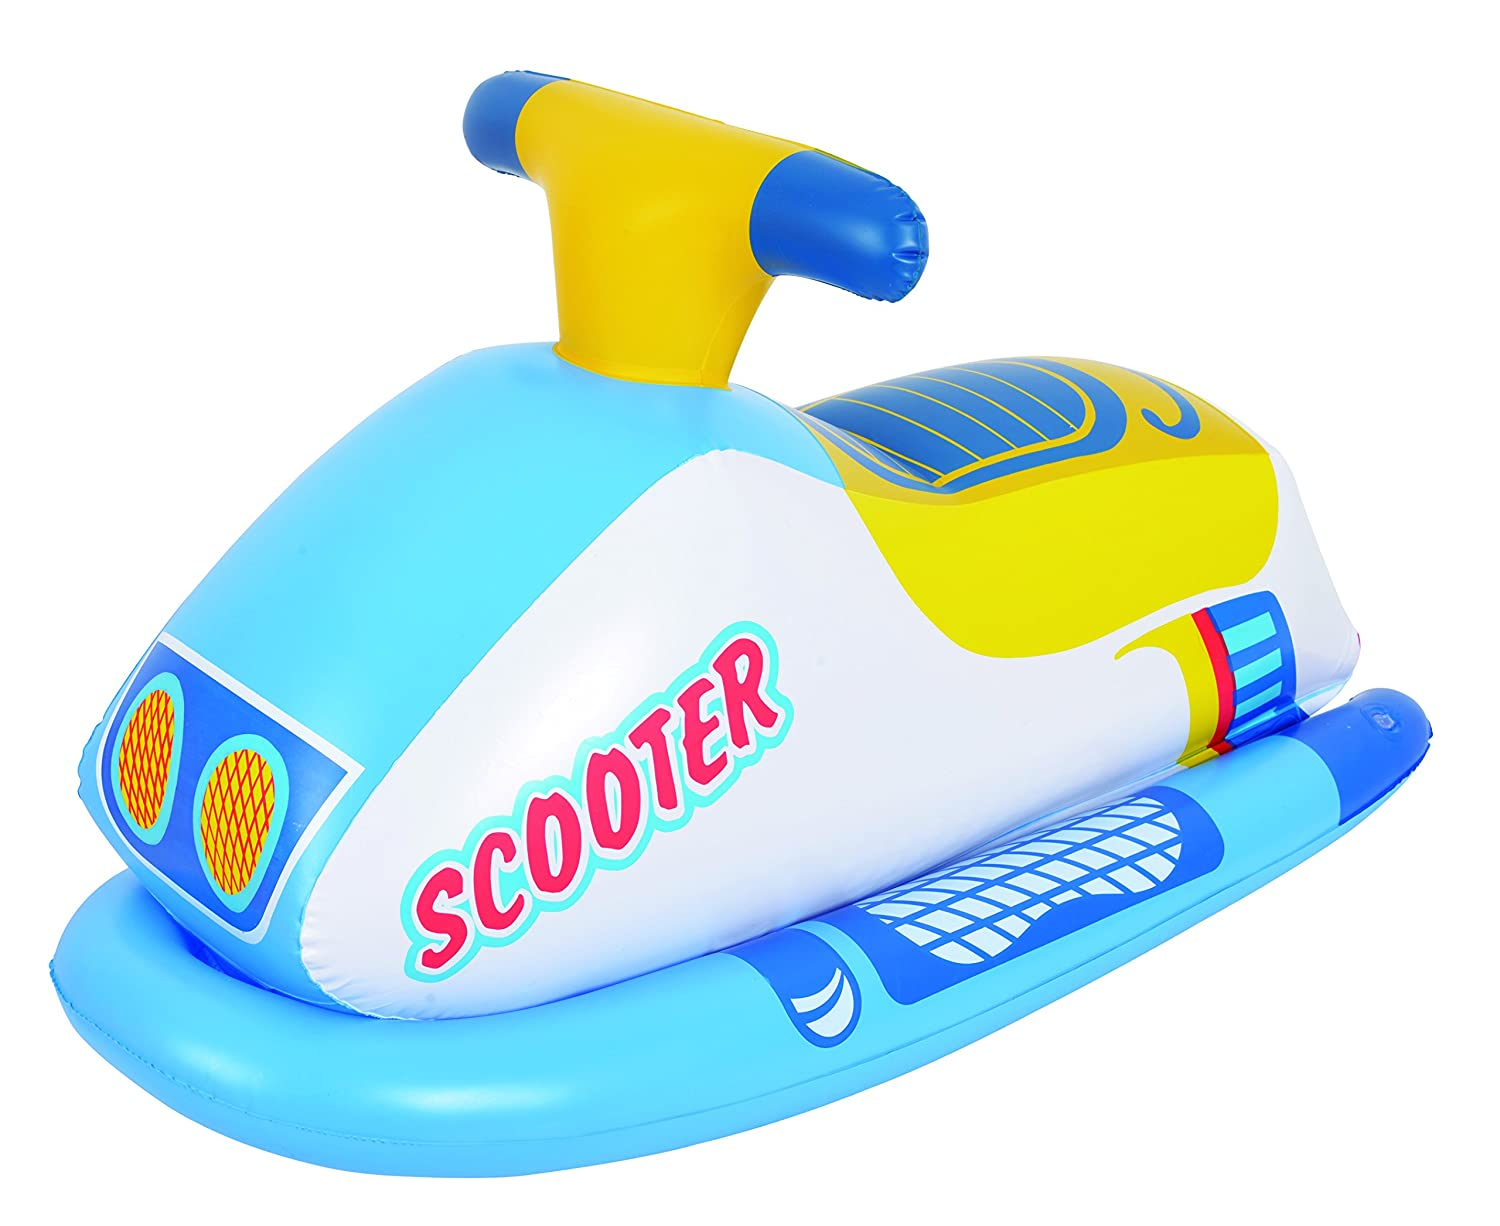 MOTO ACUATICA INFANTIL PLAYA SCOOTER HINCHABLE PLAYA 91X51CM ...